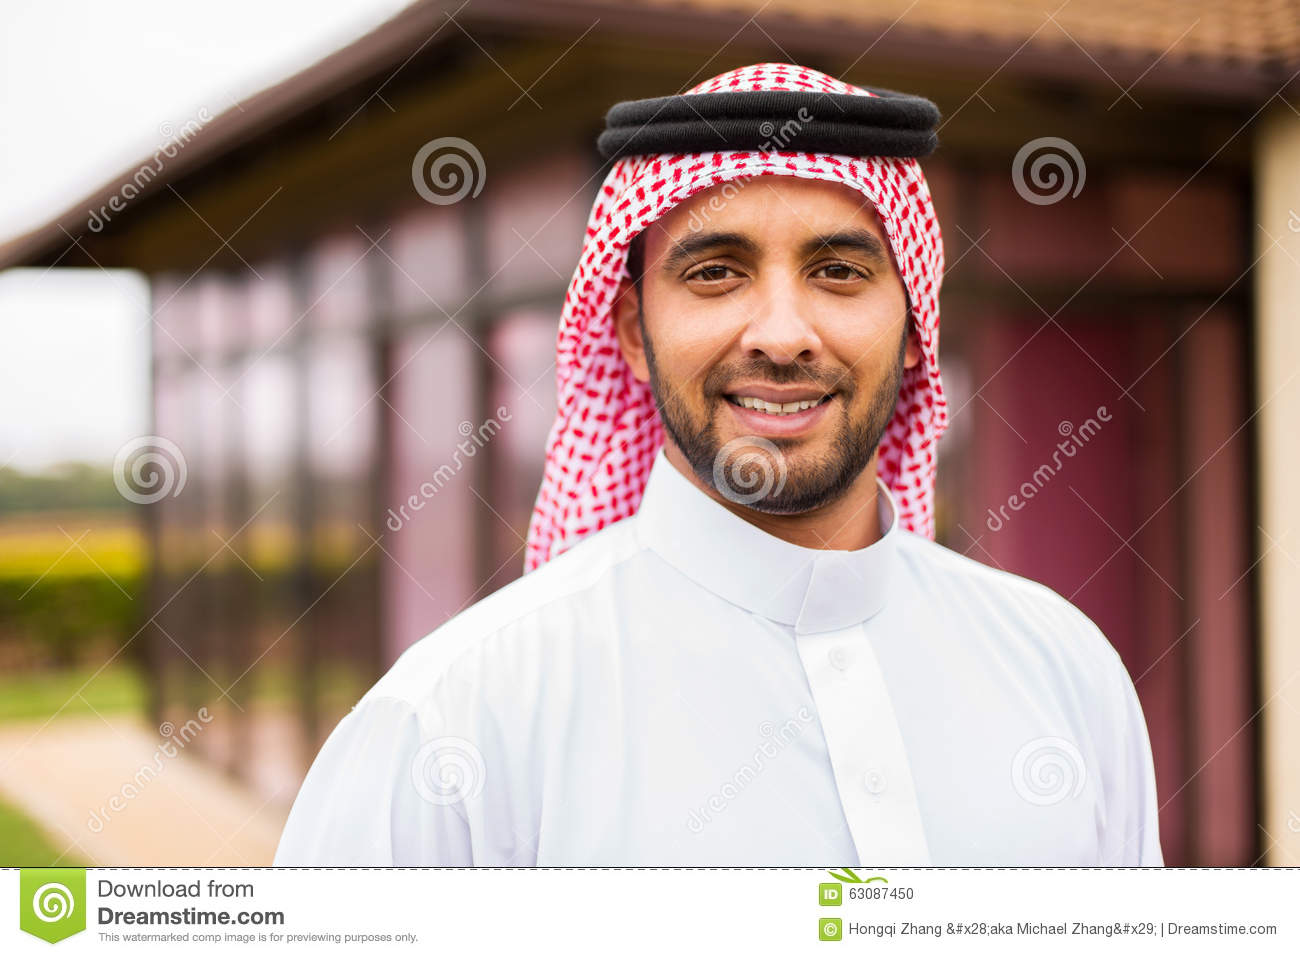 Download Homme Du Moyen-Orient Dehors Photo stock - Image du confiant, pose: 63087450